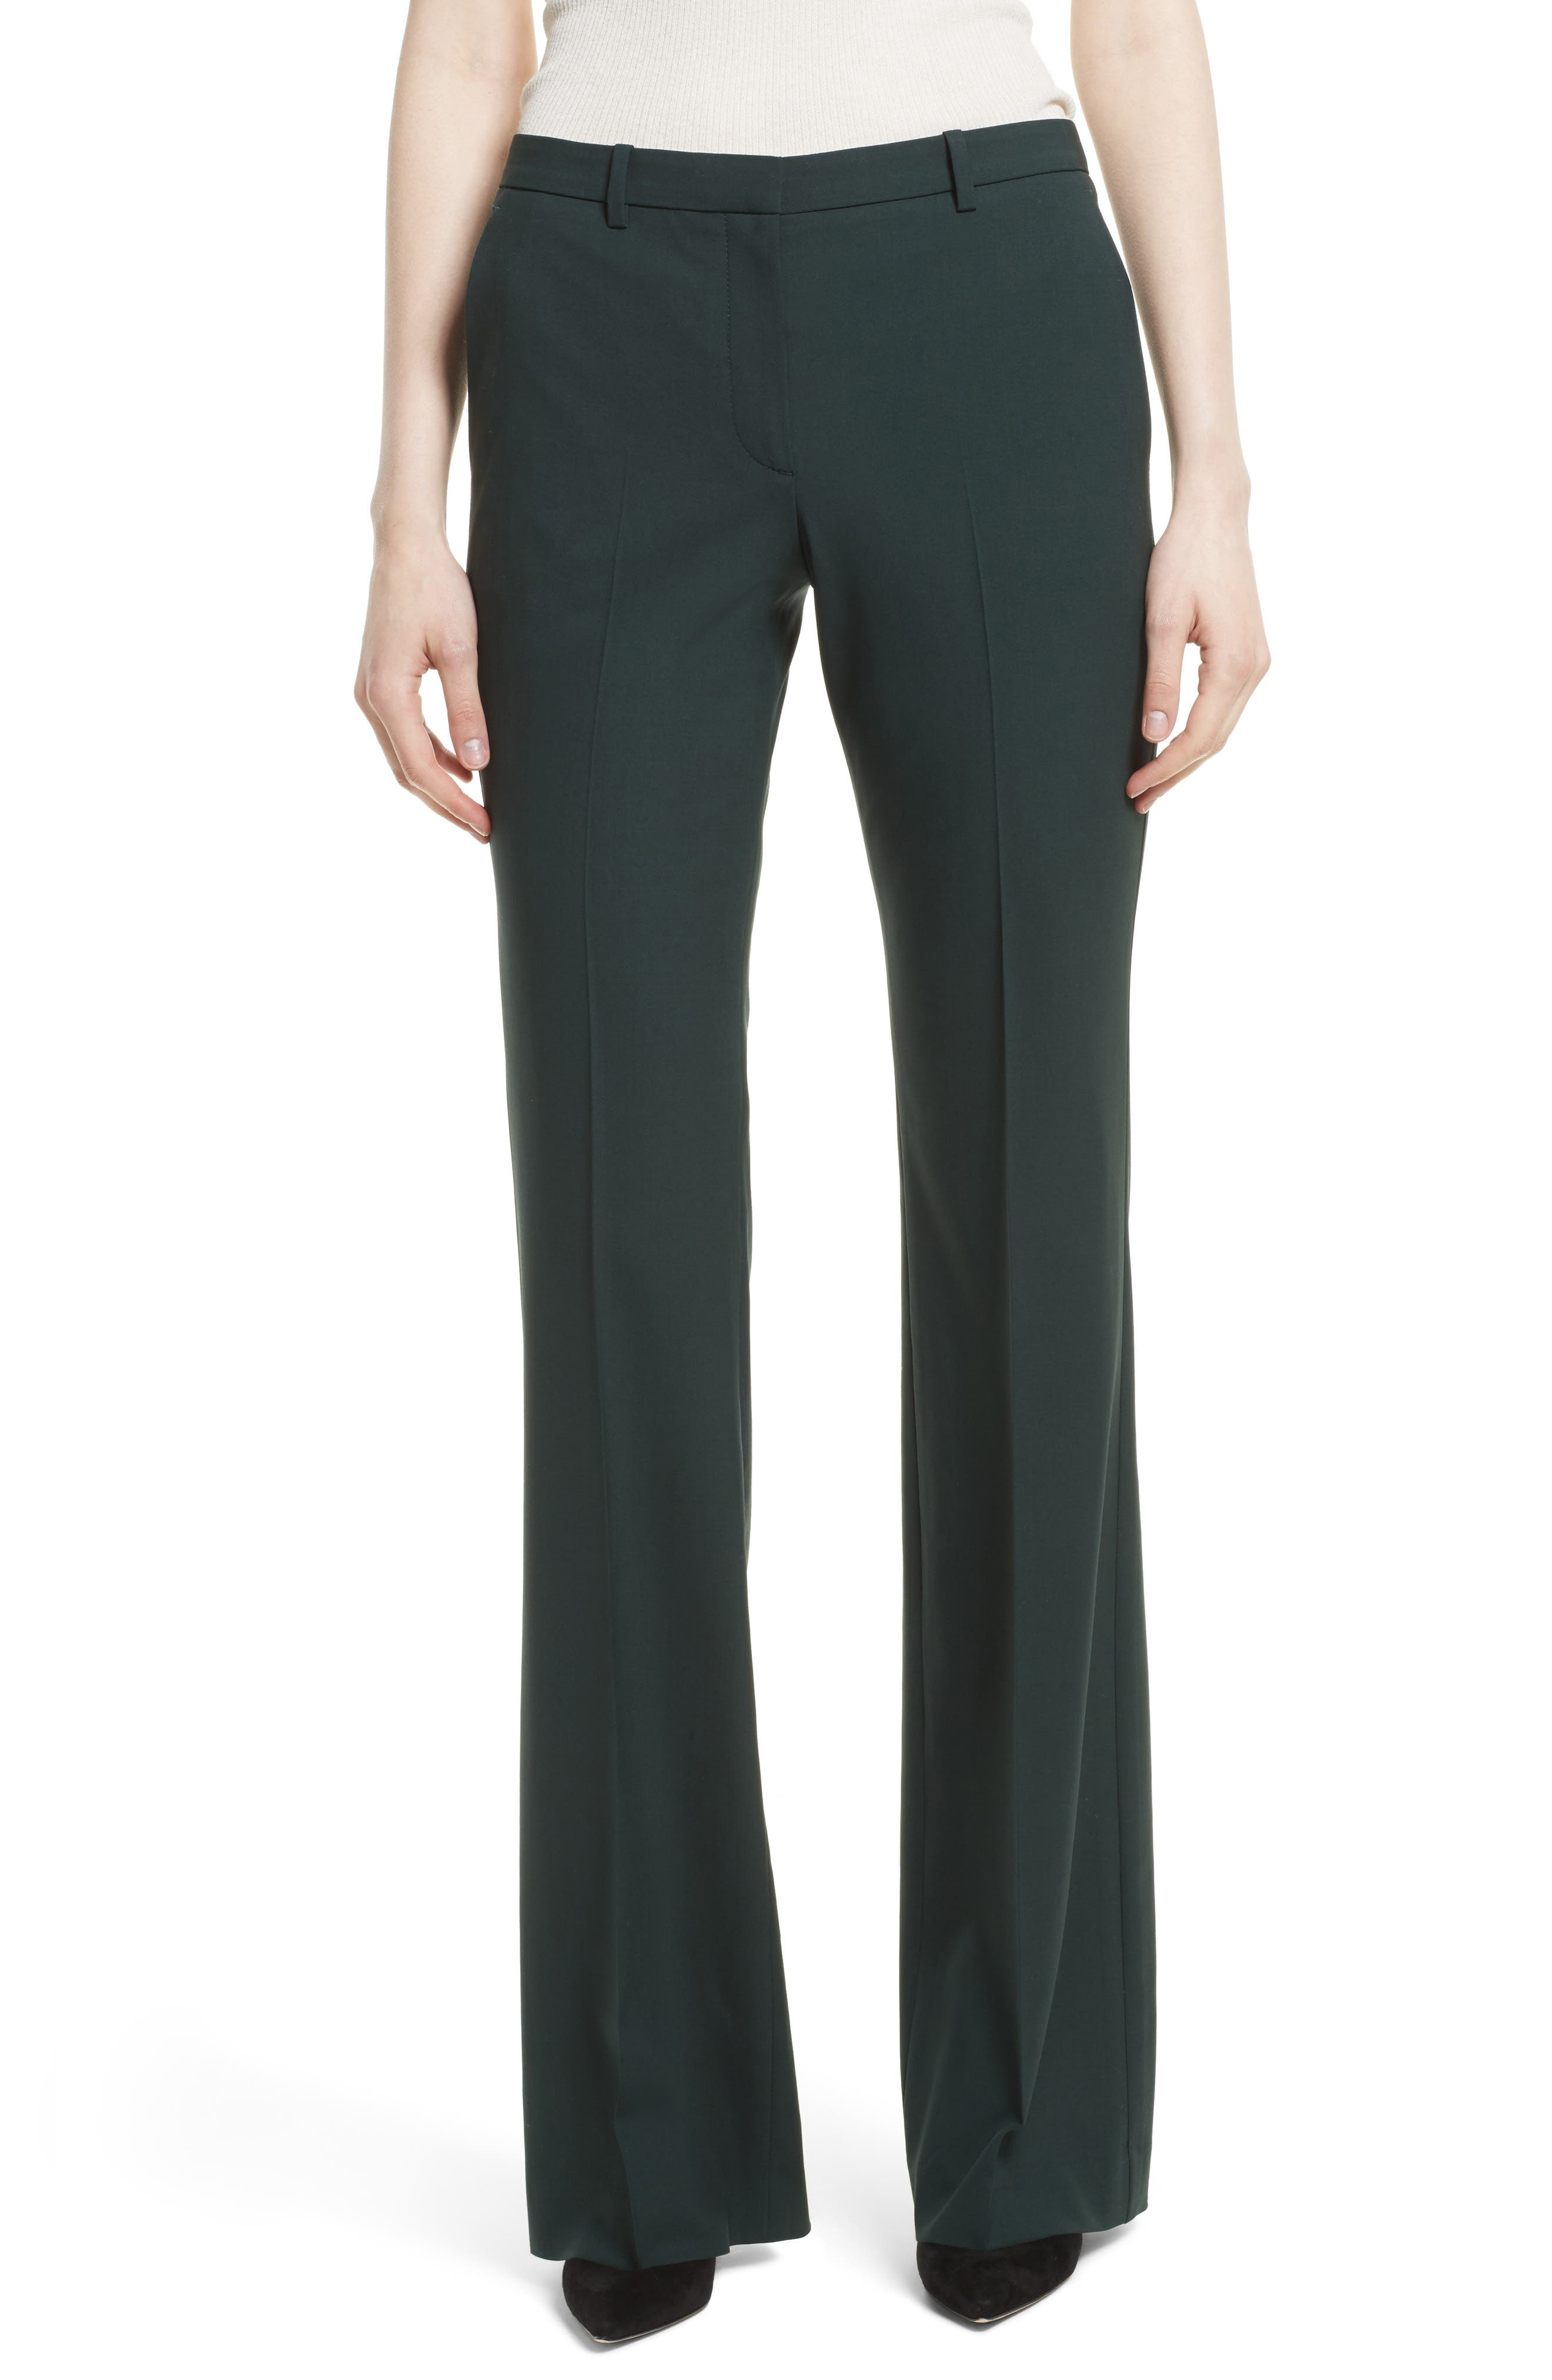 Demitria 2 Flare Leg Stretch Wool Pants,                             Main thumbnail 1, color,                             392